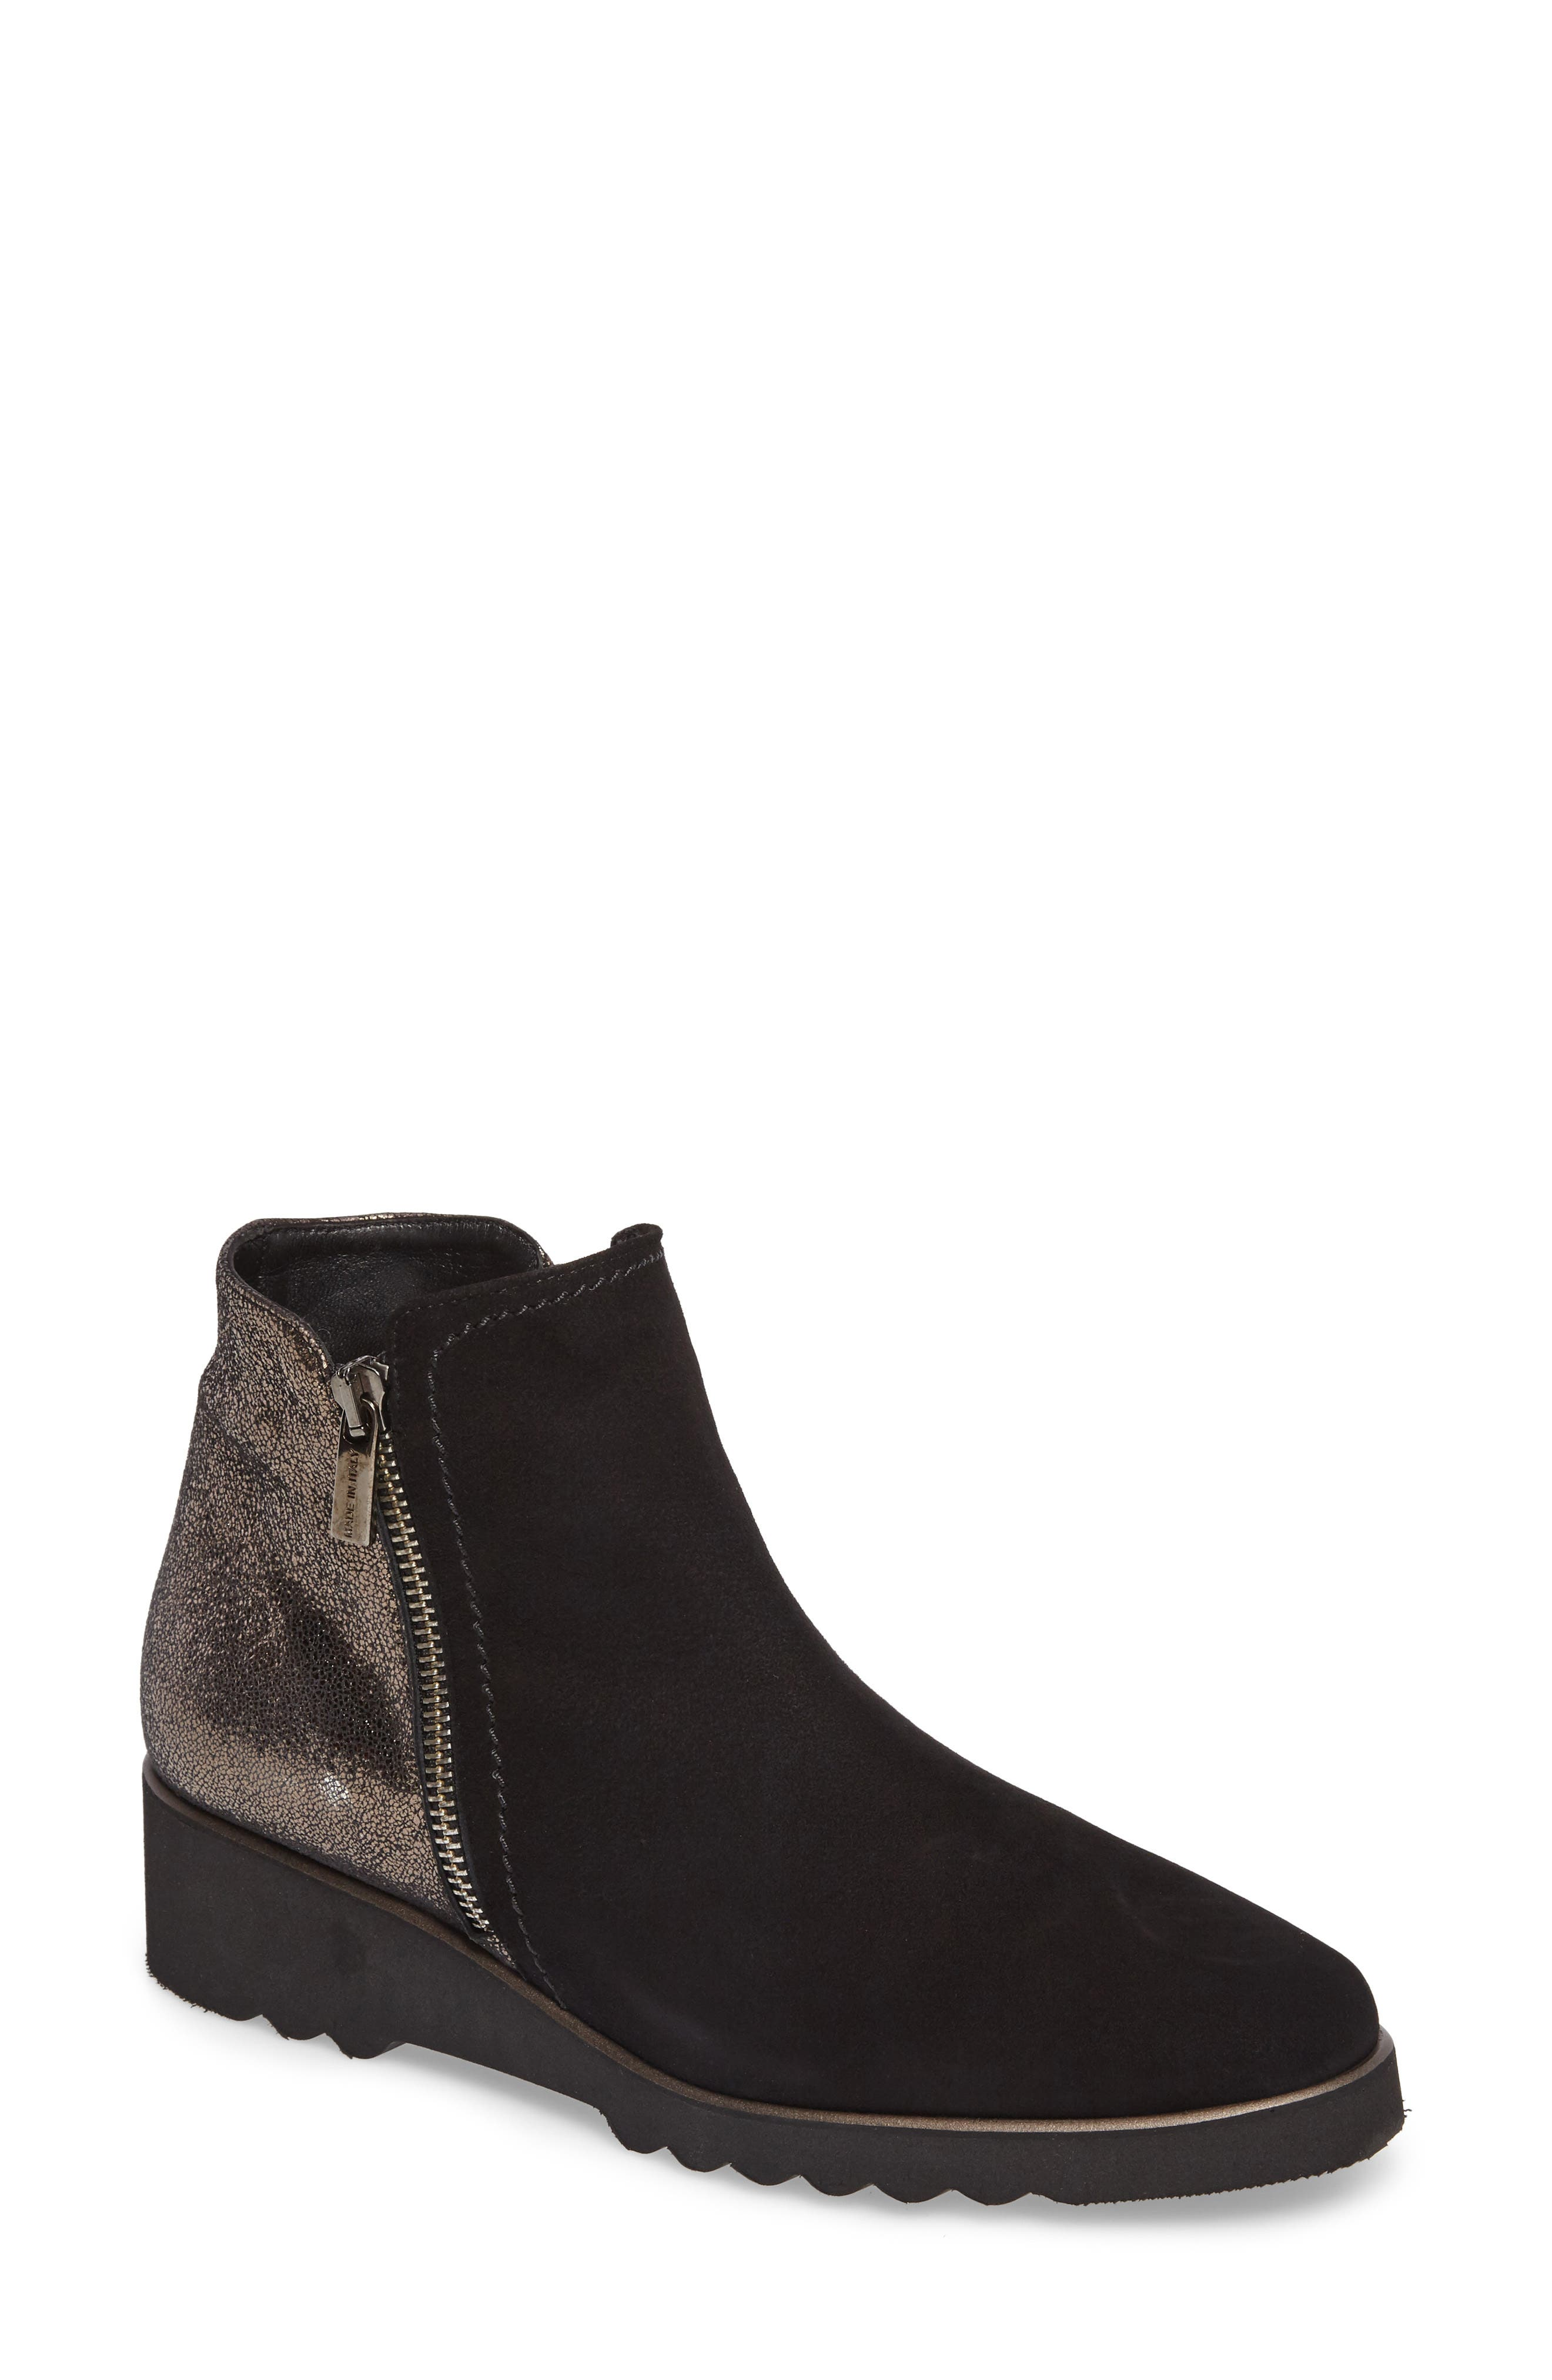 Addie Wedge Bootie,                             Main thumbnail 1, color,